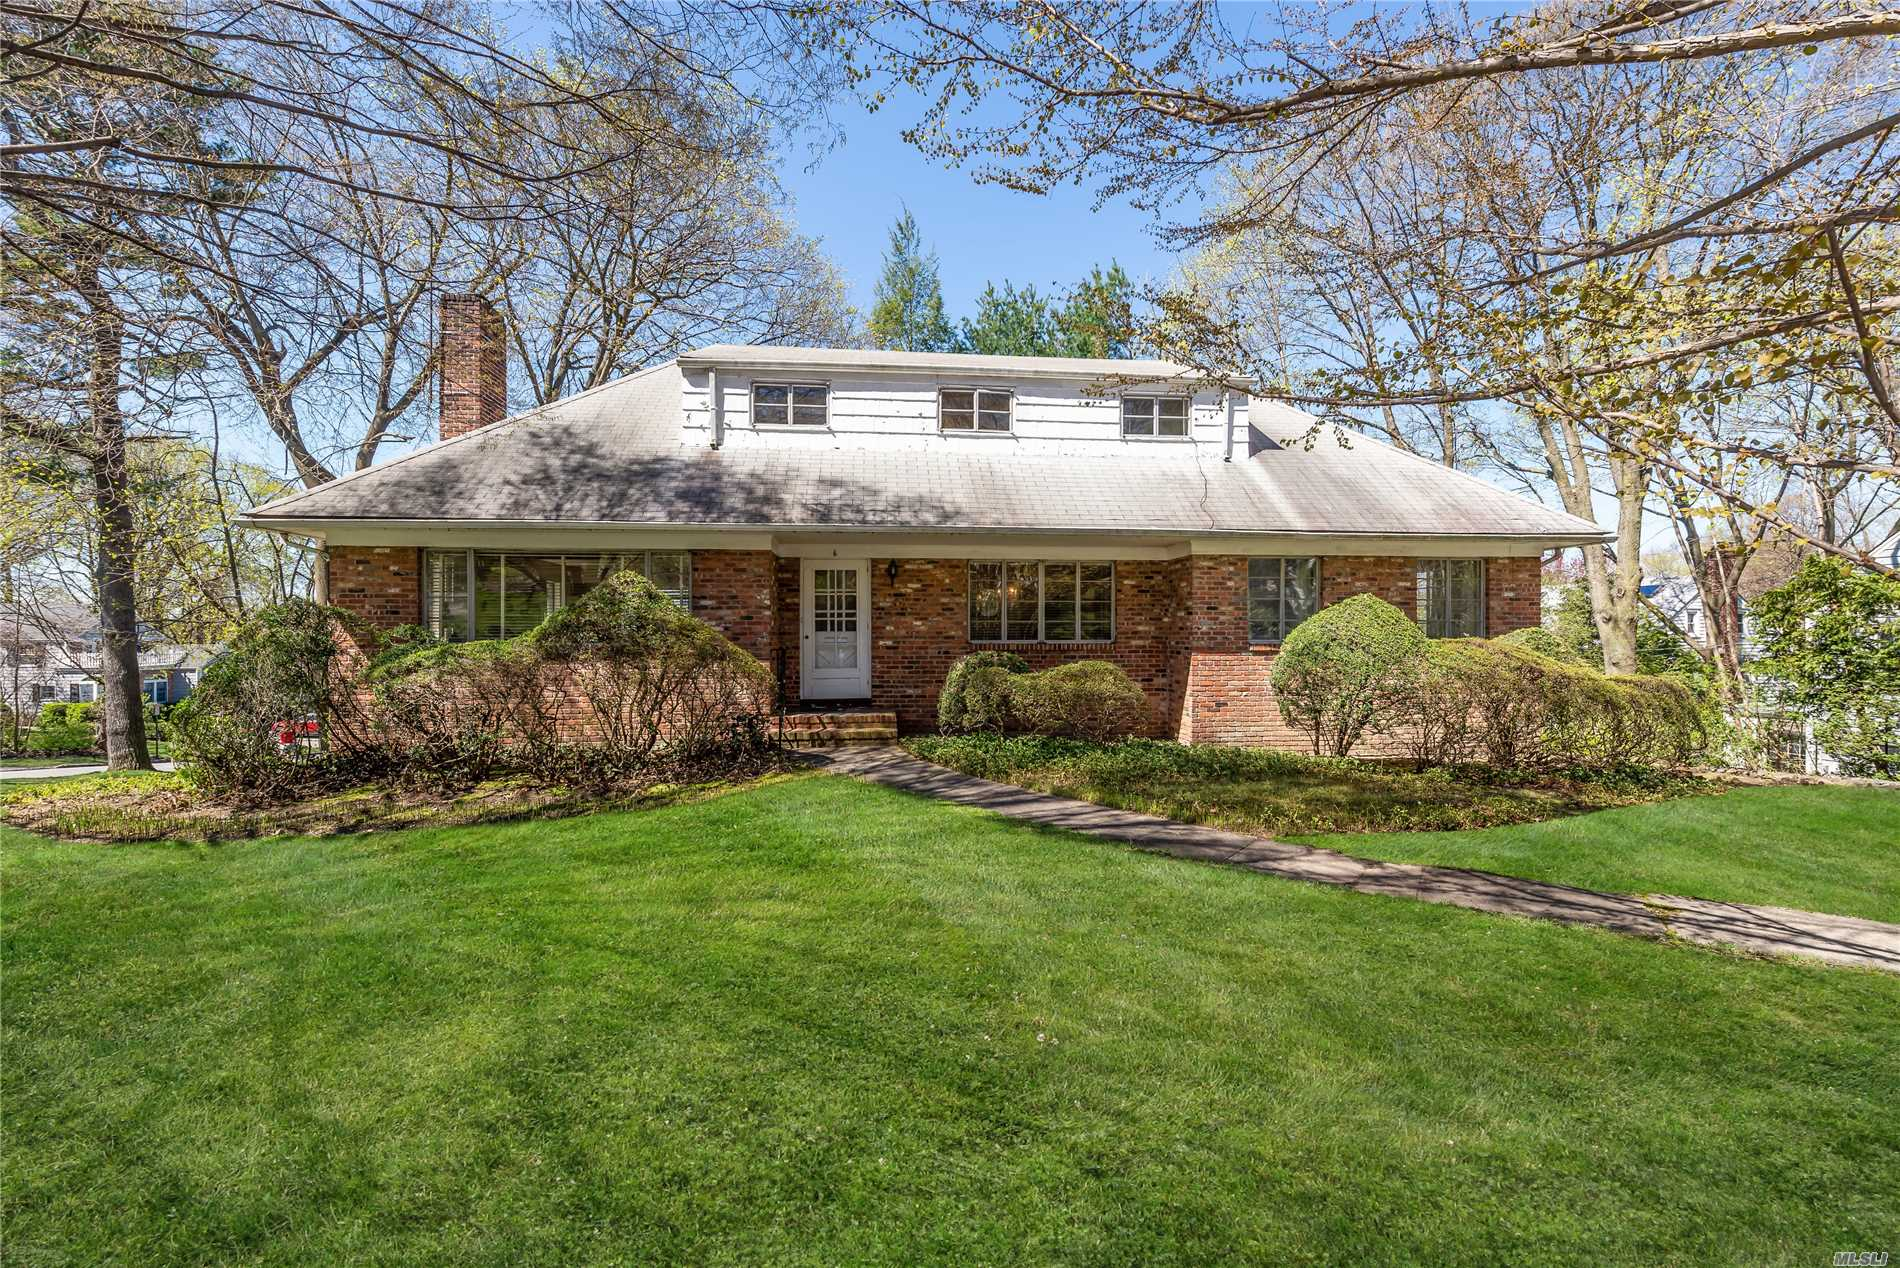 Sun drenched 4 Bedroom 2 Bath Cape in lovely neighborhood close to schools, town and LIRR awaits new owner to bring it to its full potential.